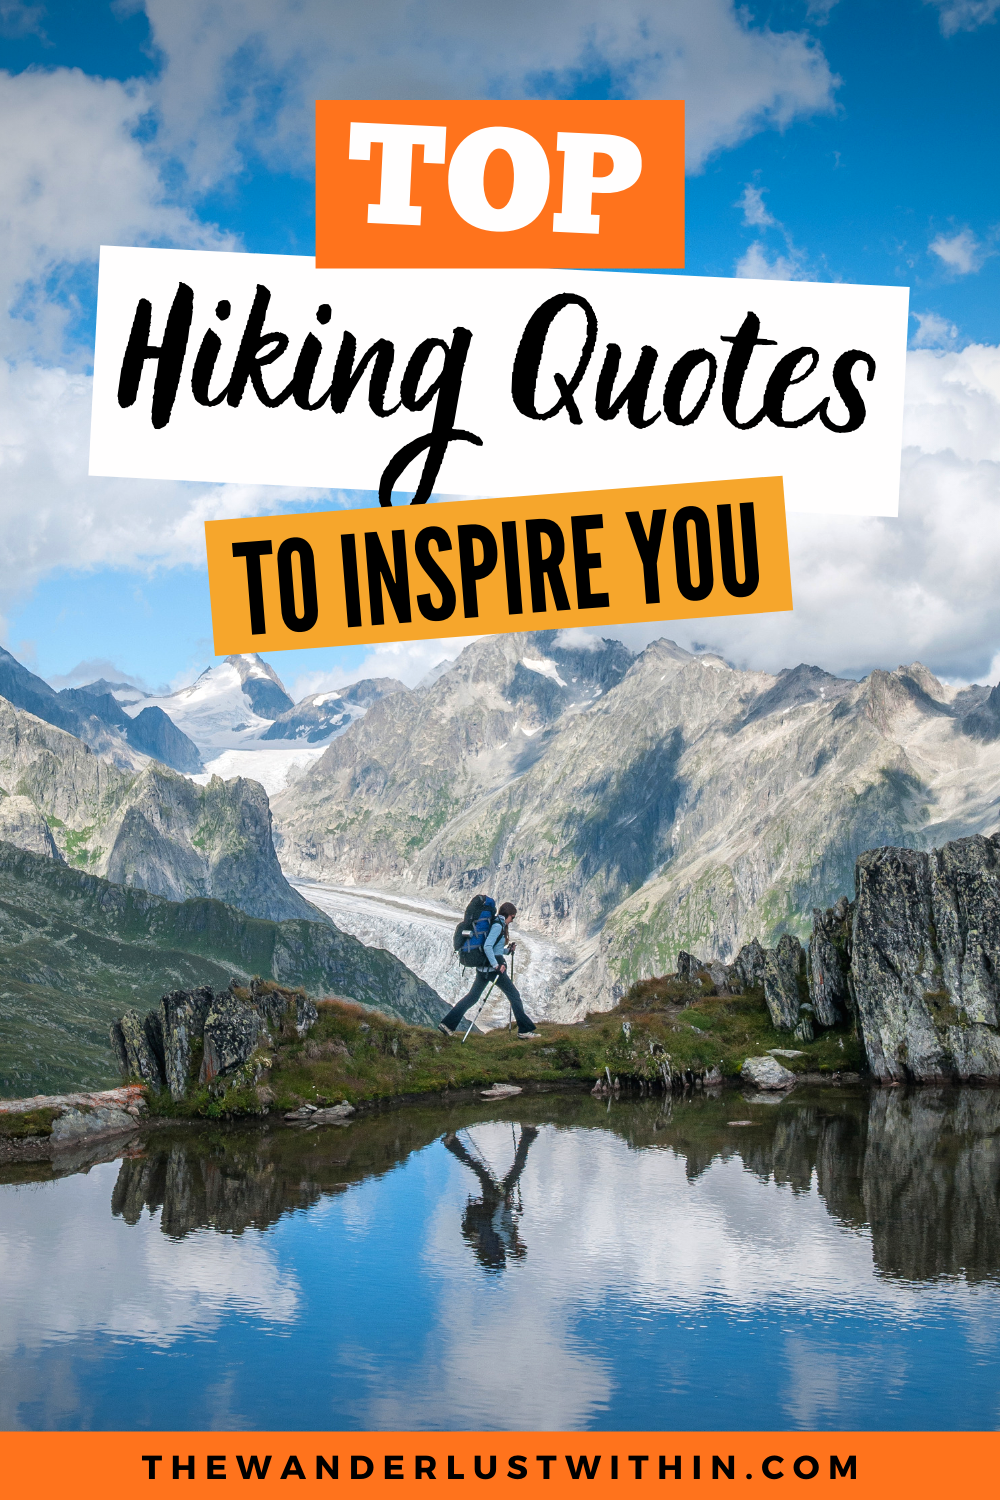 80 Inspiring Hiking Quotes For Adventure Lovers In 2021 The Wanderlust Within Hiking Quotes Adventure Adventure Travel Explore Adventure Travel Wanderlust